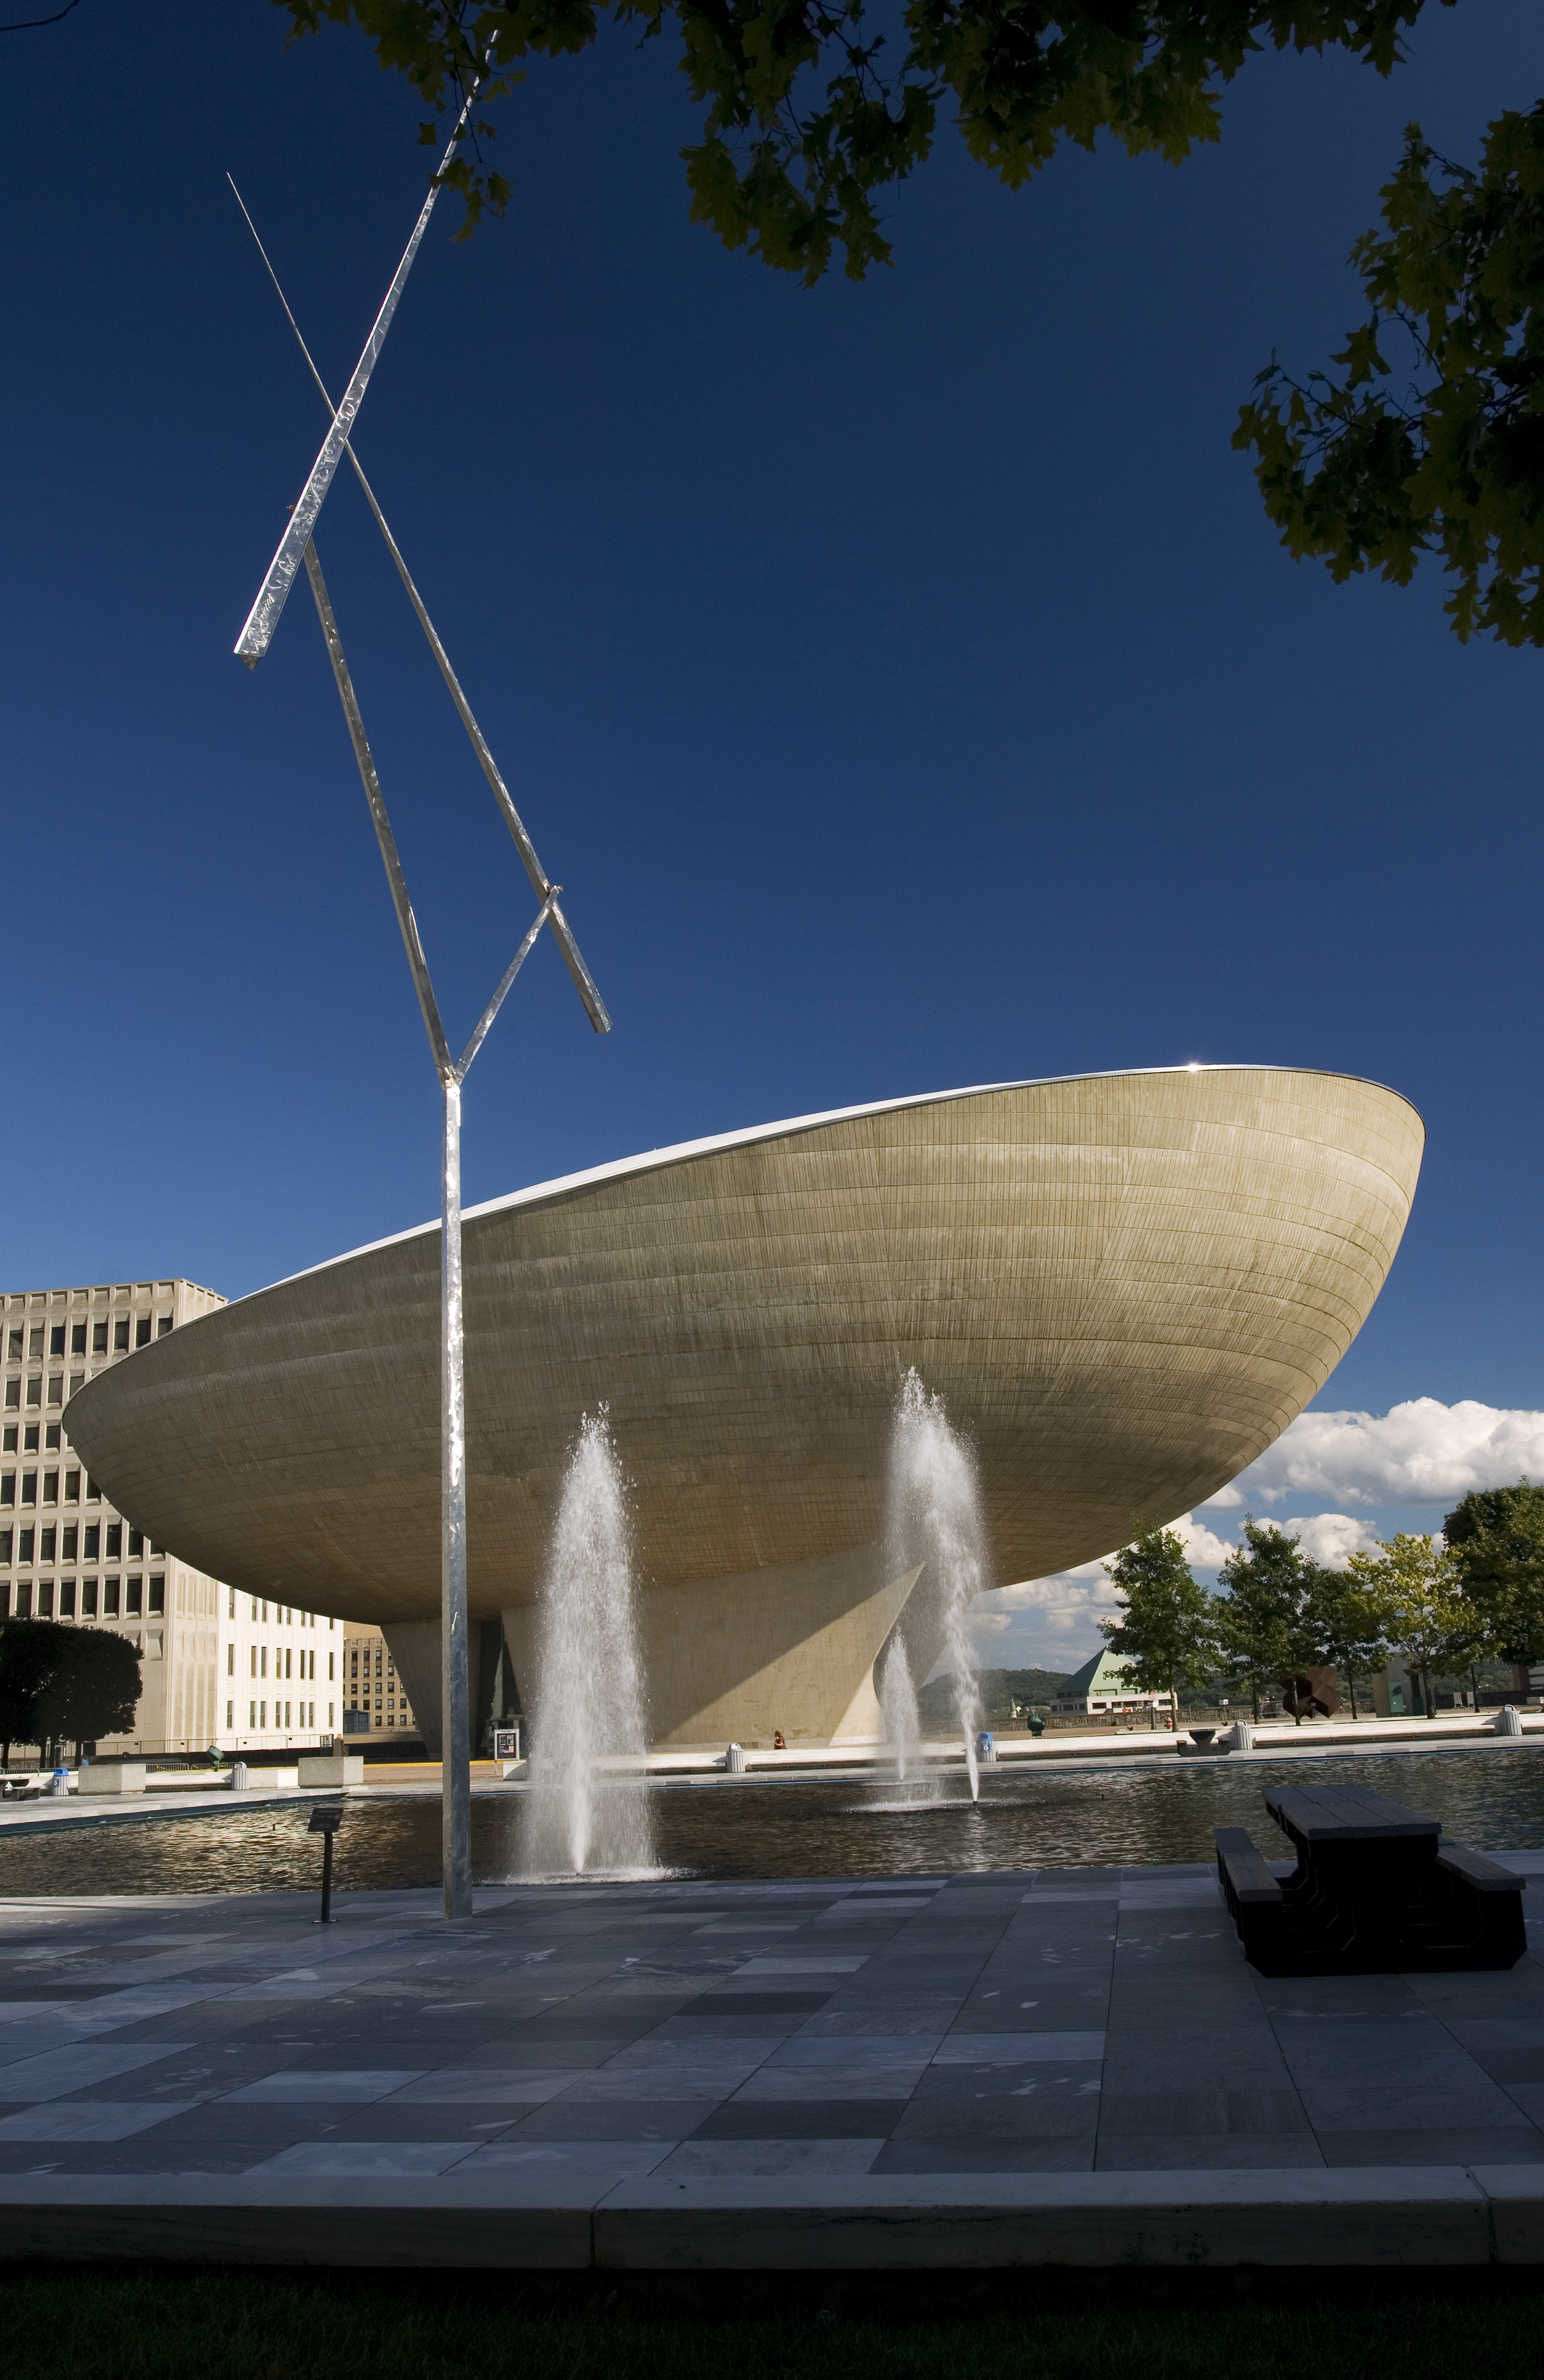 The Egg at Empire State Plaza, Albany